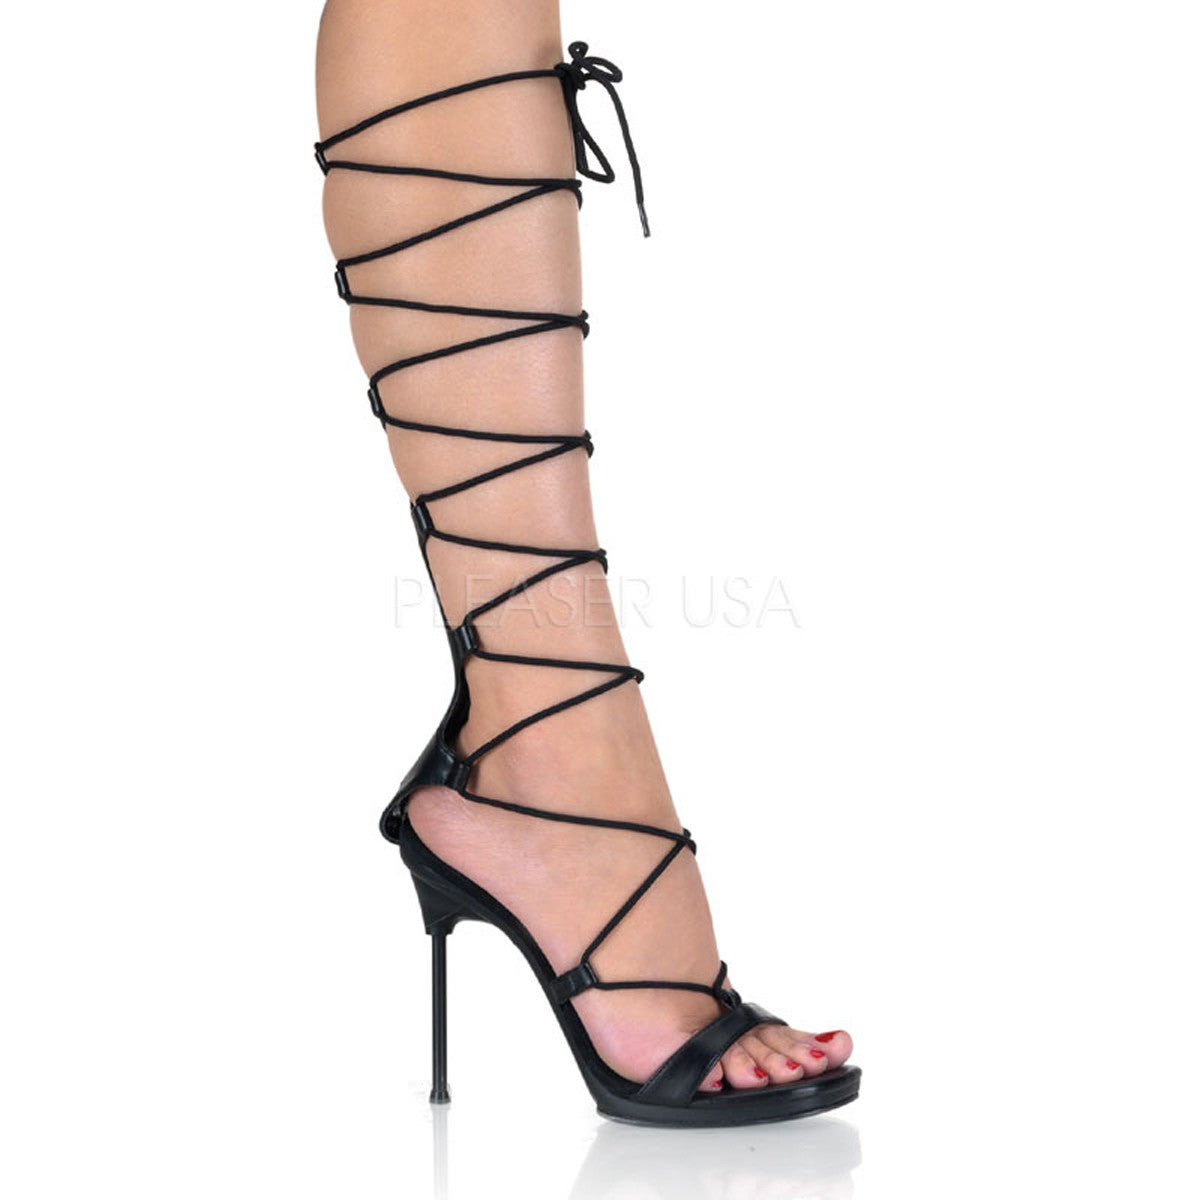 Fabulicious,FABULICIOUS CHIC-60 Black Pu-Black Matte Lace Up Sandals - Shoecup.com